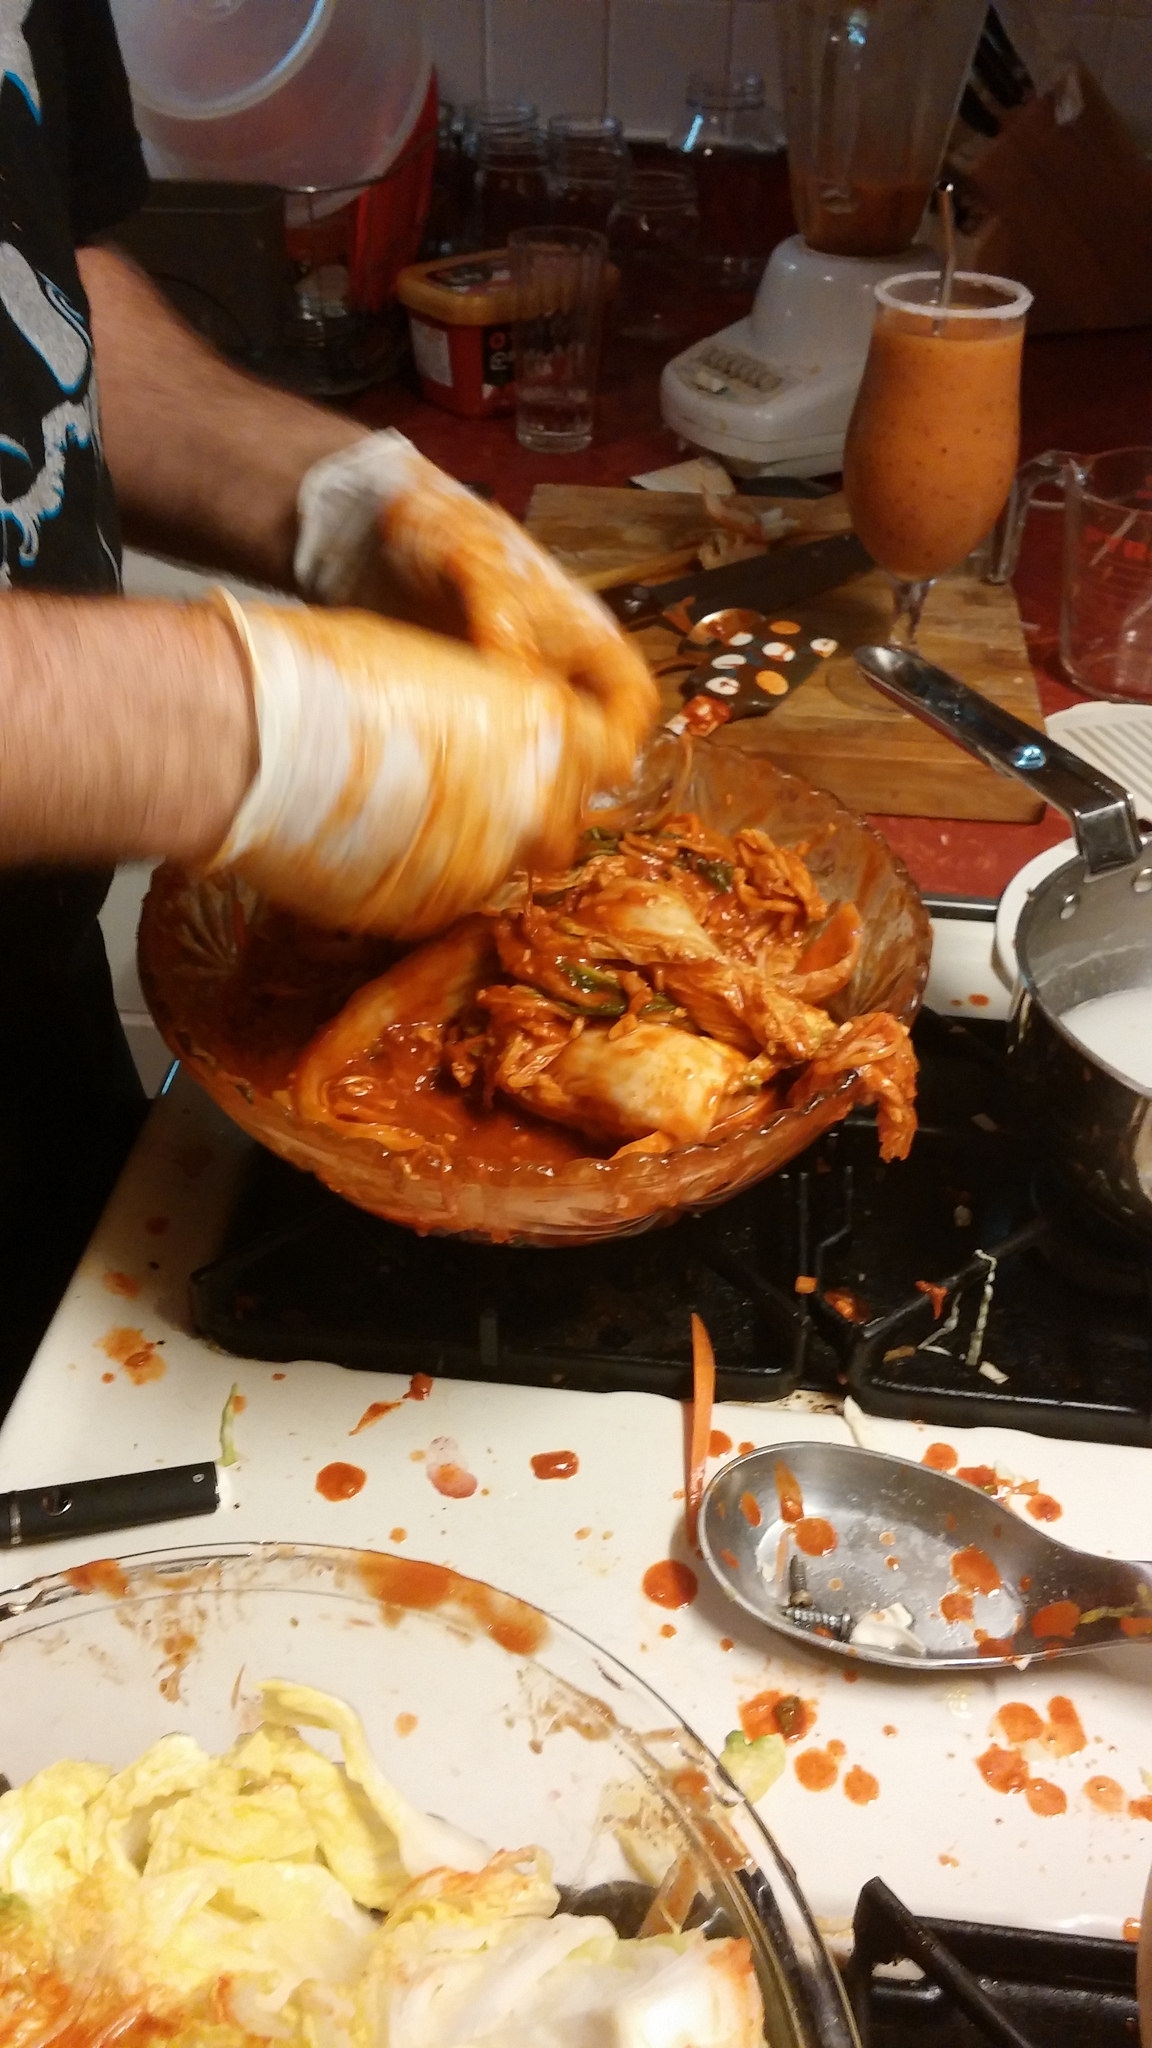 Making kimchi is messy business.